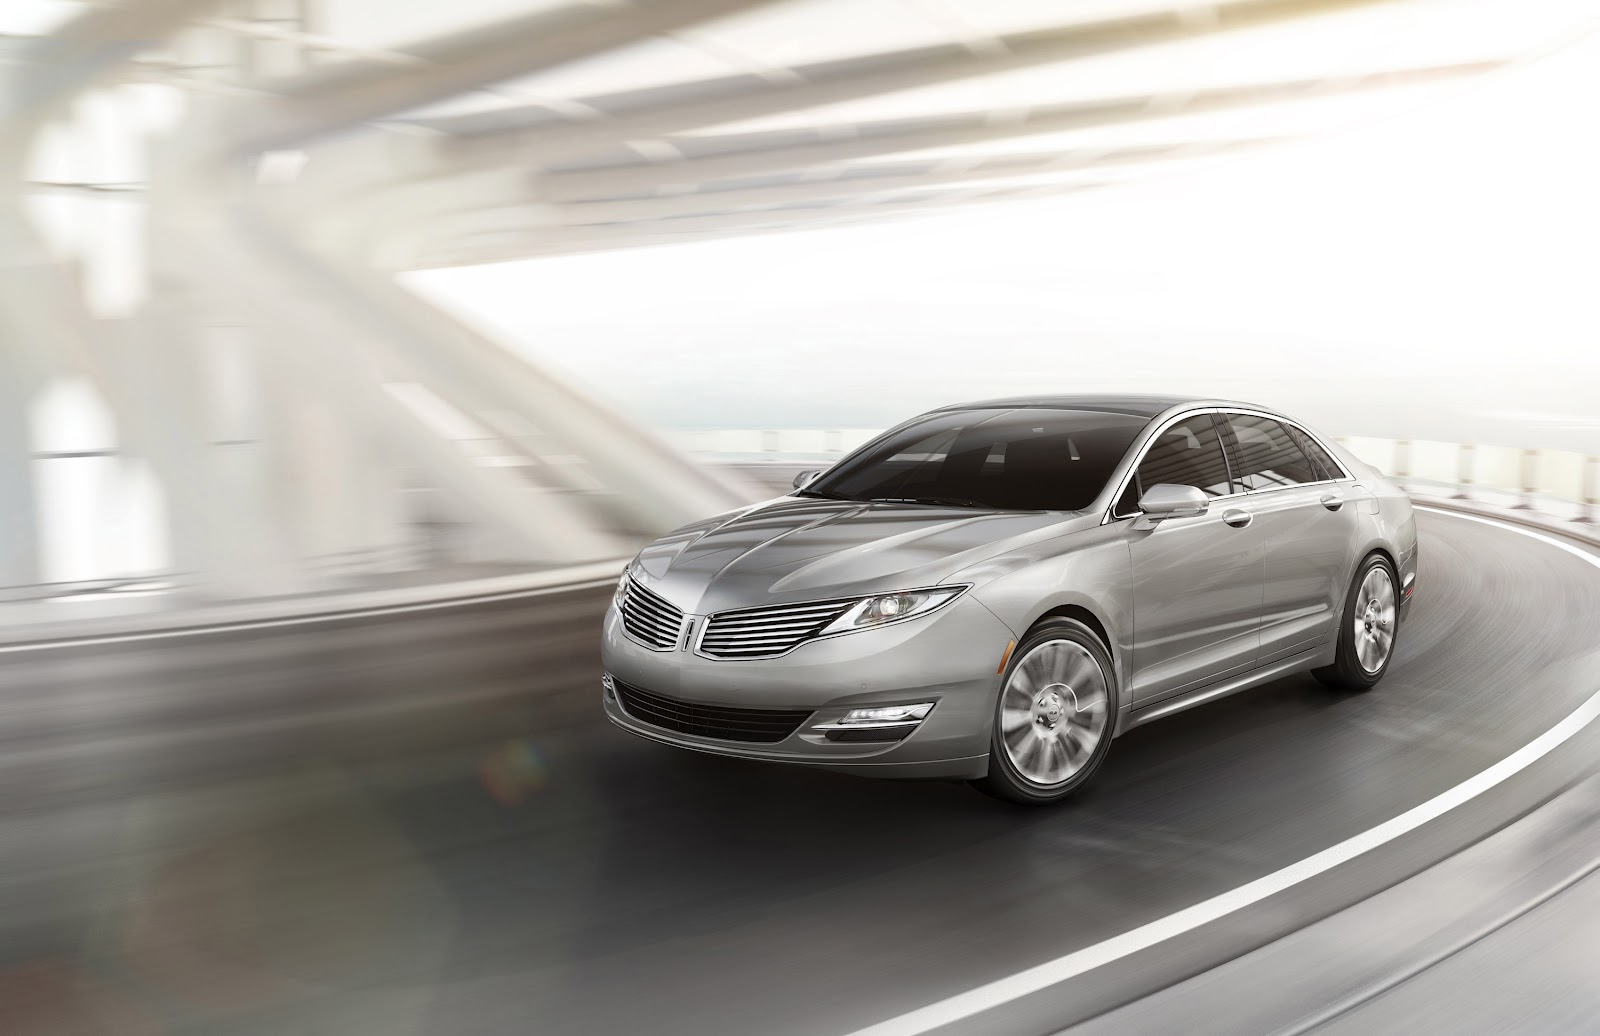 2016 - [Lincoln] MKZ - Page 2 2013+lincoln+mkz